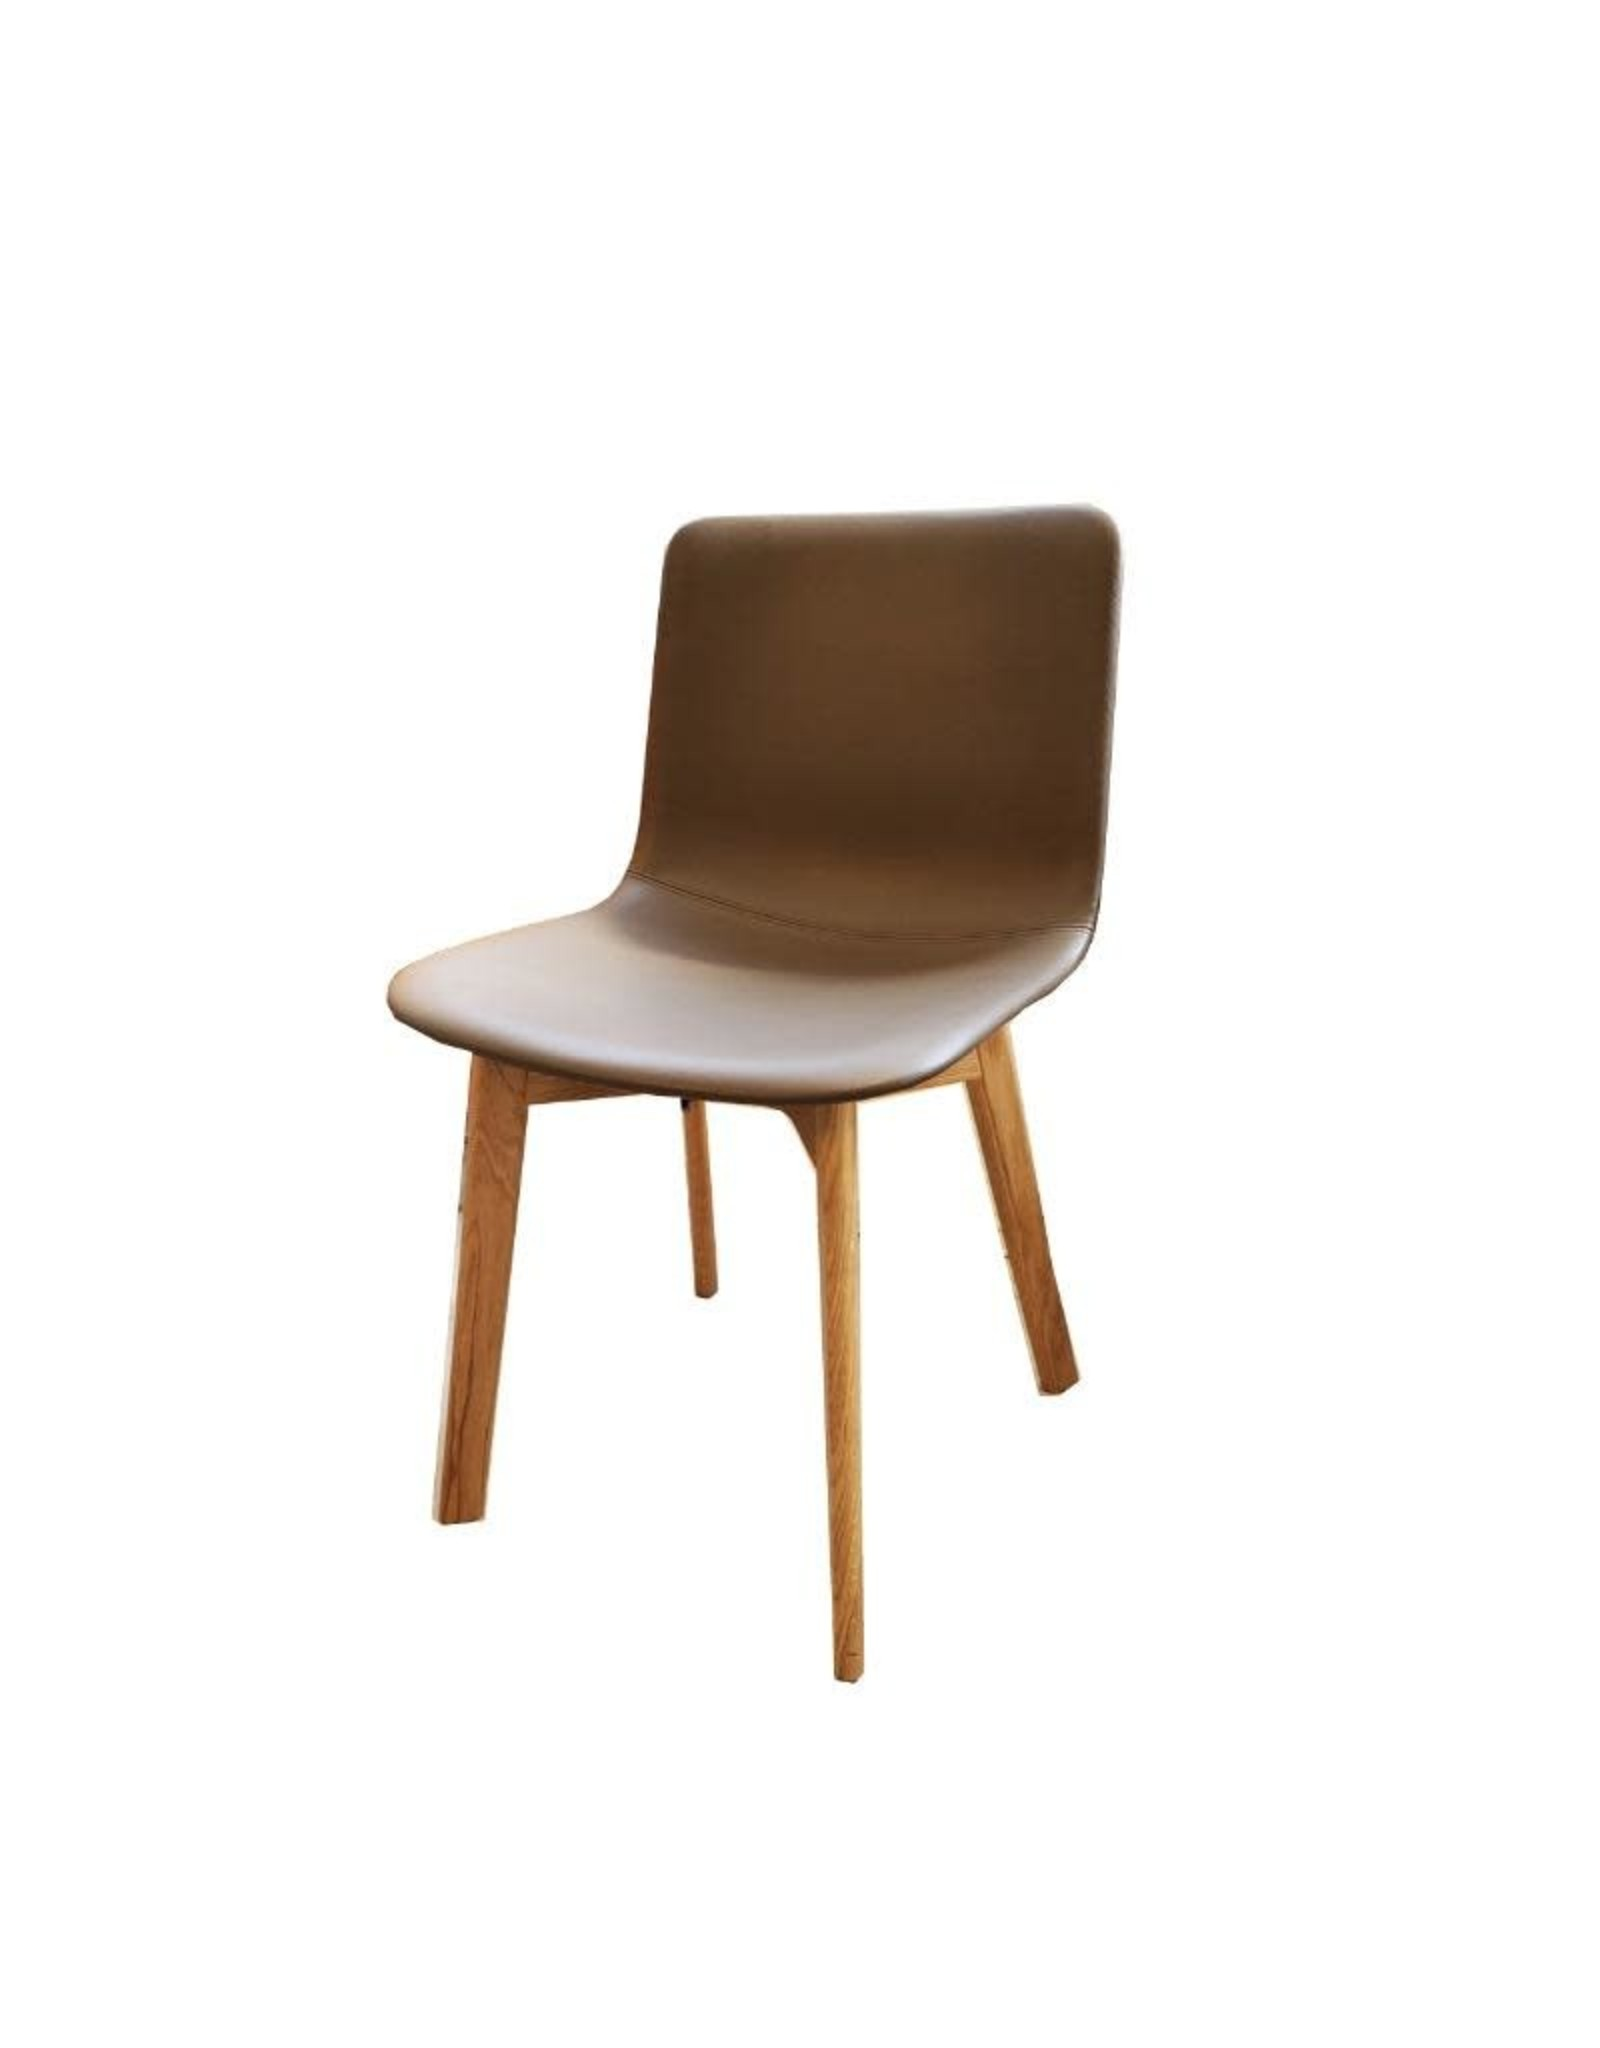 4222 PATO WOOD CHAIR, FULLY UPHOLSTERED IN GROUP 0 OMNI #320 DARK CLAY LEATHER